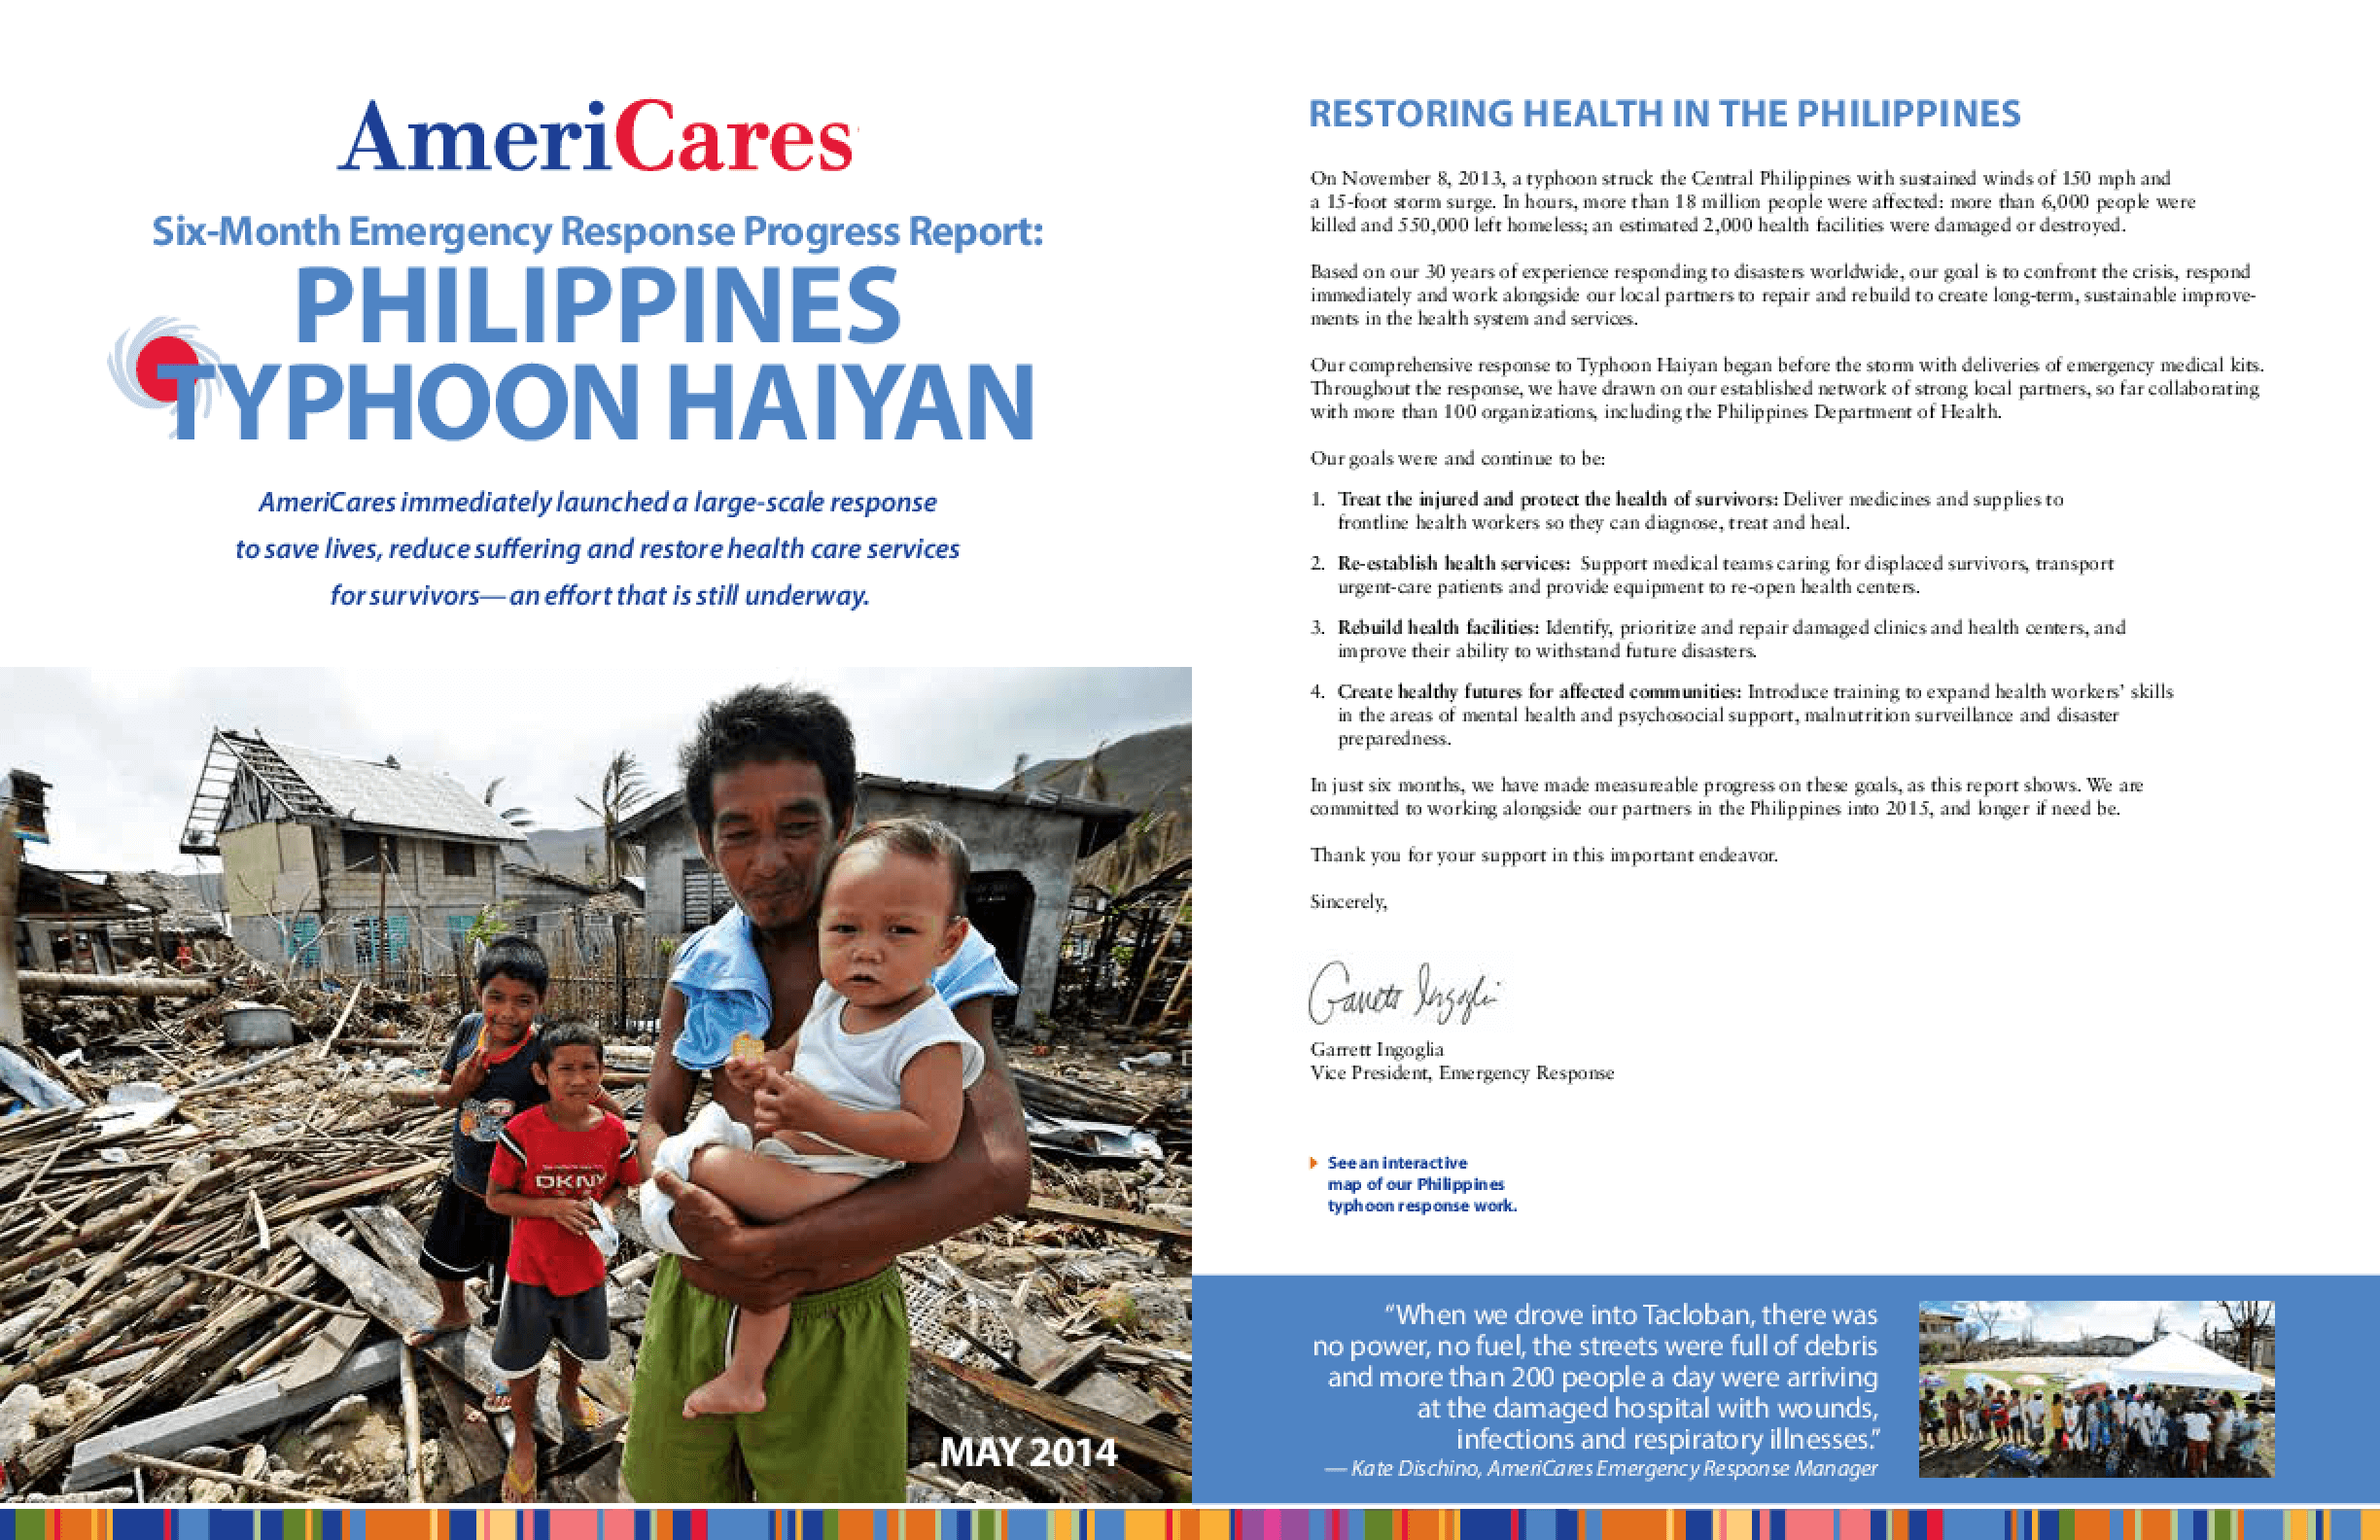 SIx-Month Emergency Response Progress Report: Philippines Typhoon Haiyan